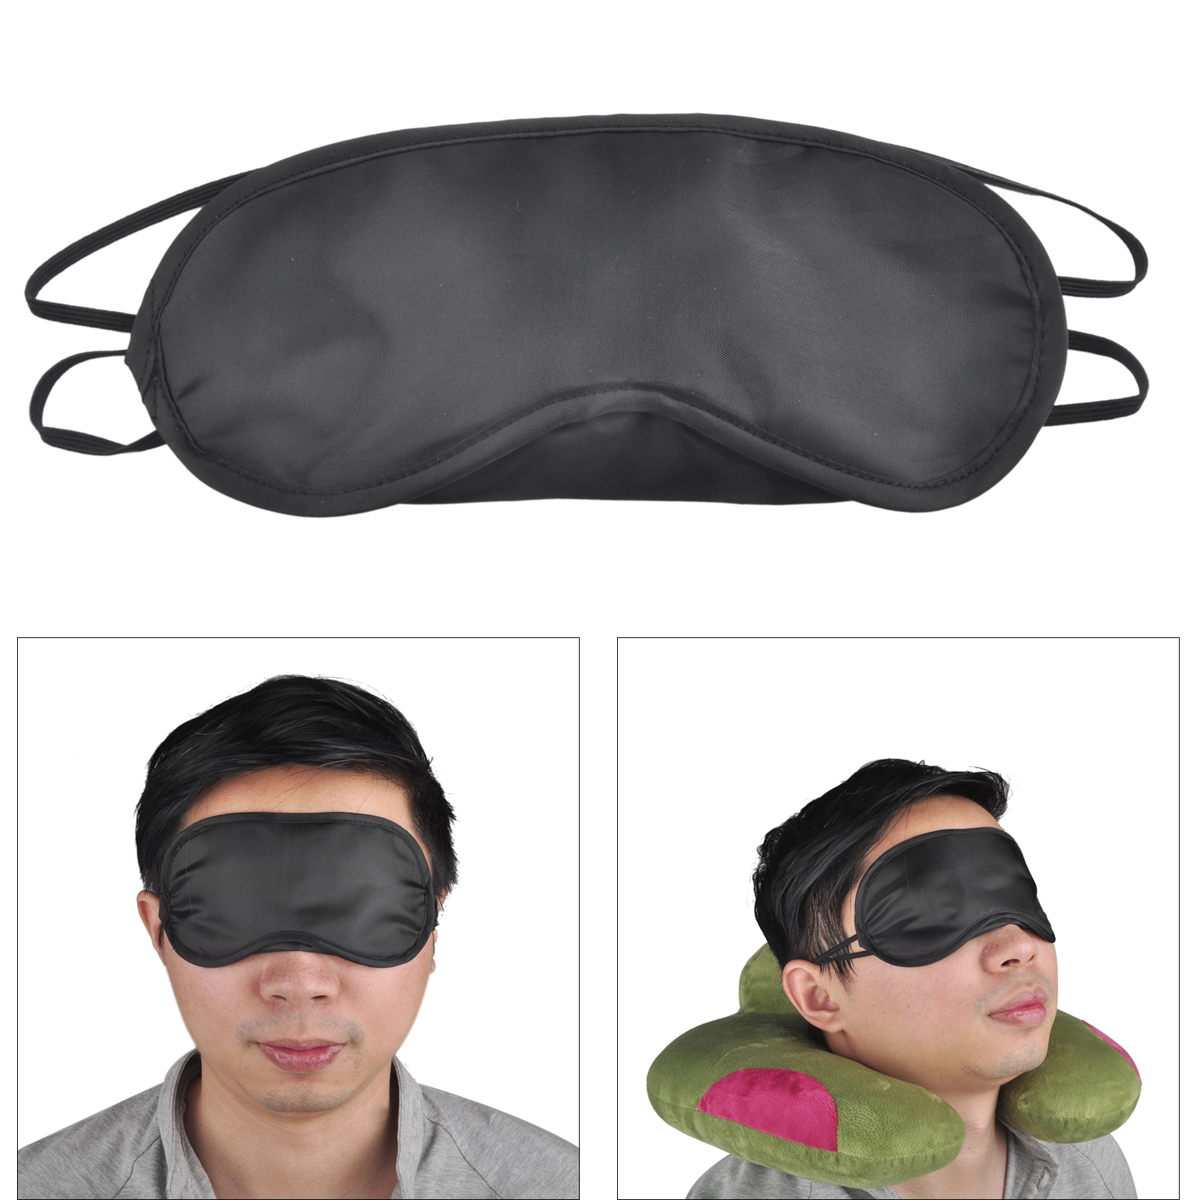 100Pcs Lot Sleep Mask Natural Sleeping Eye Mask Eyeshade Cover Shade Eye Patch Women Men Soft Portable Blindfold Travel Eyepatch in Face Skin Care Tools from Beauty Health